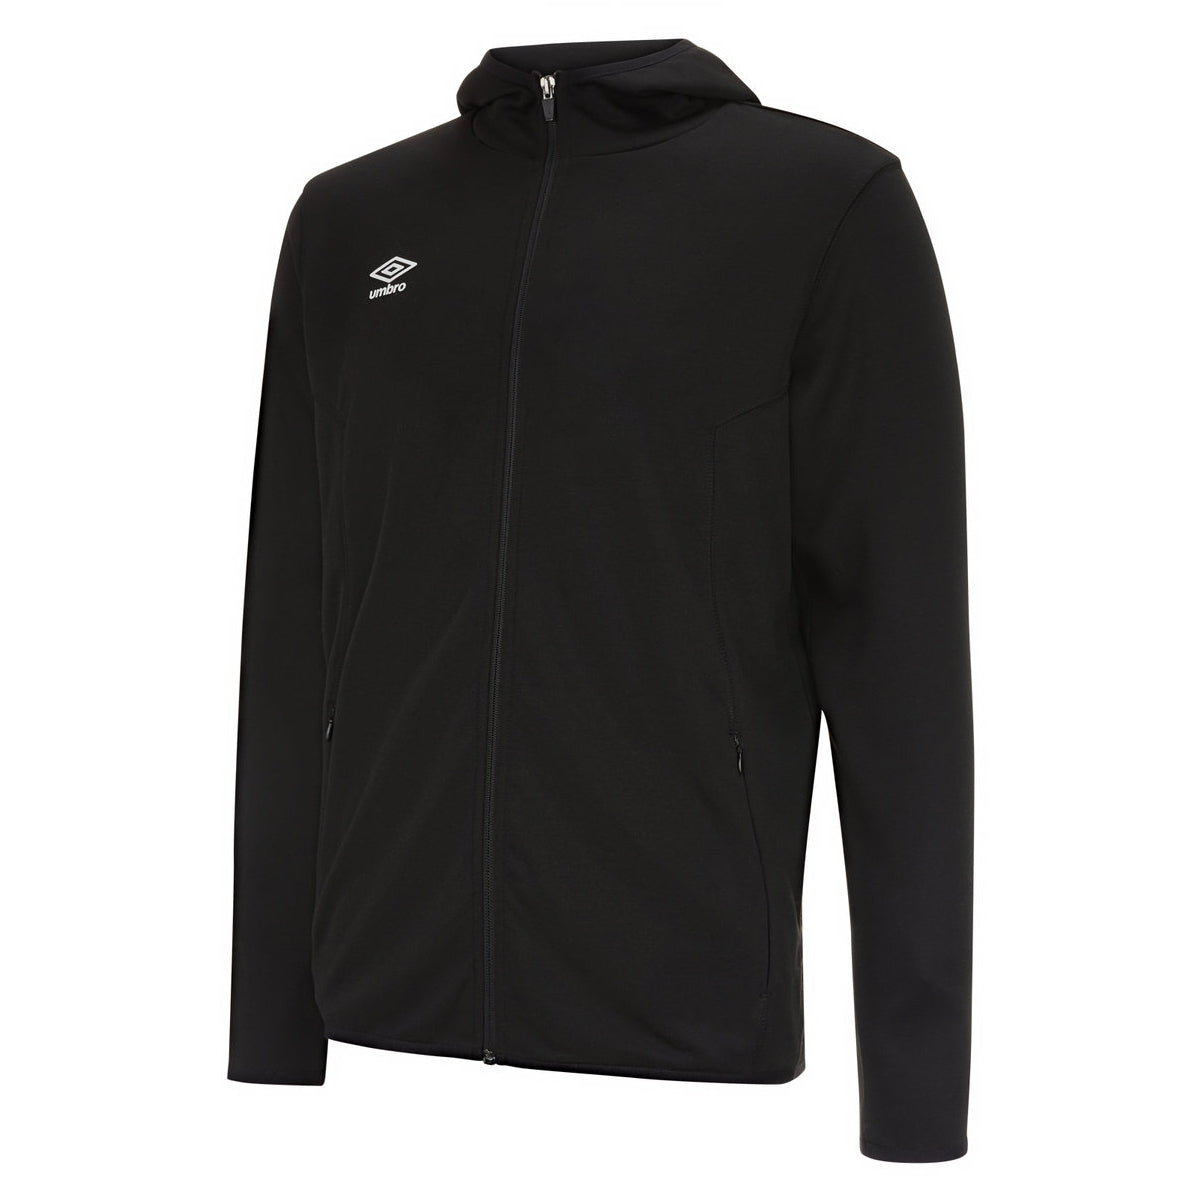 Umbro Pro Fleece Hoody in black with full zip